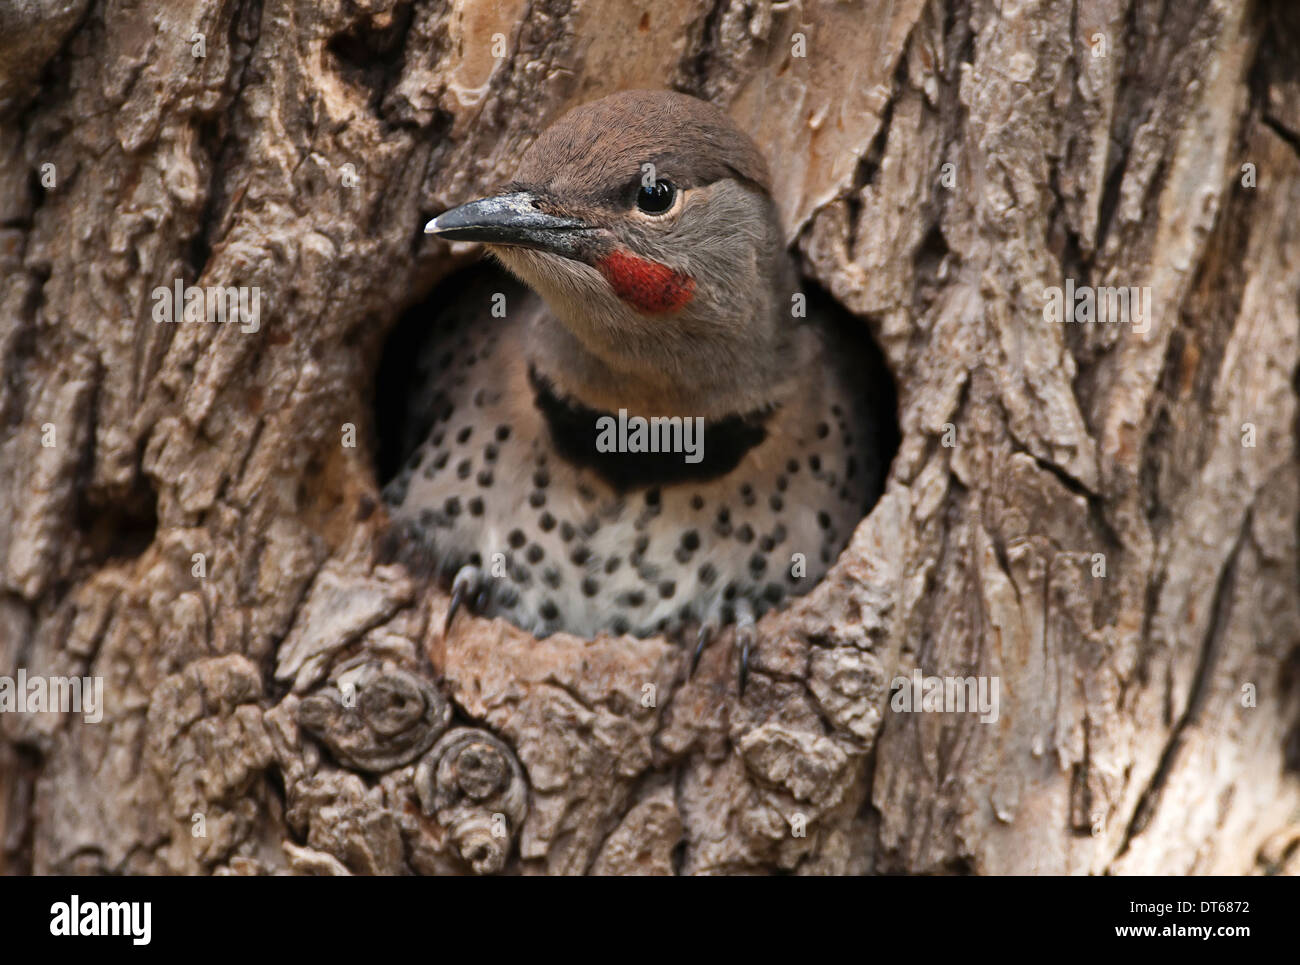 Canada Alberta Lethbridge Northern Flicker Colaptes auratus fledged woodpecker chick about to leave nest in old gnarled Elm tree - Stock Image